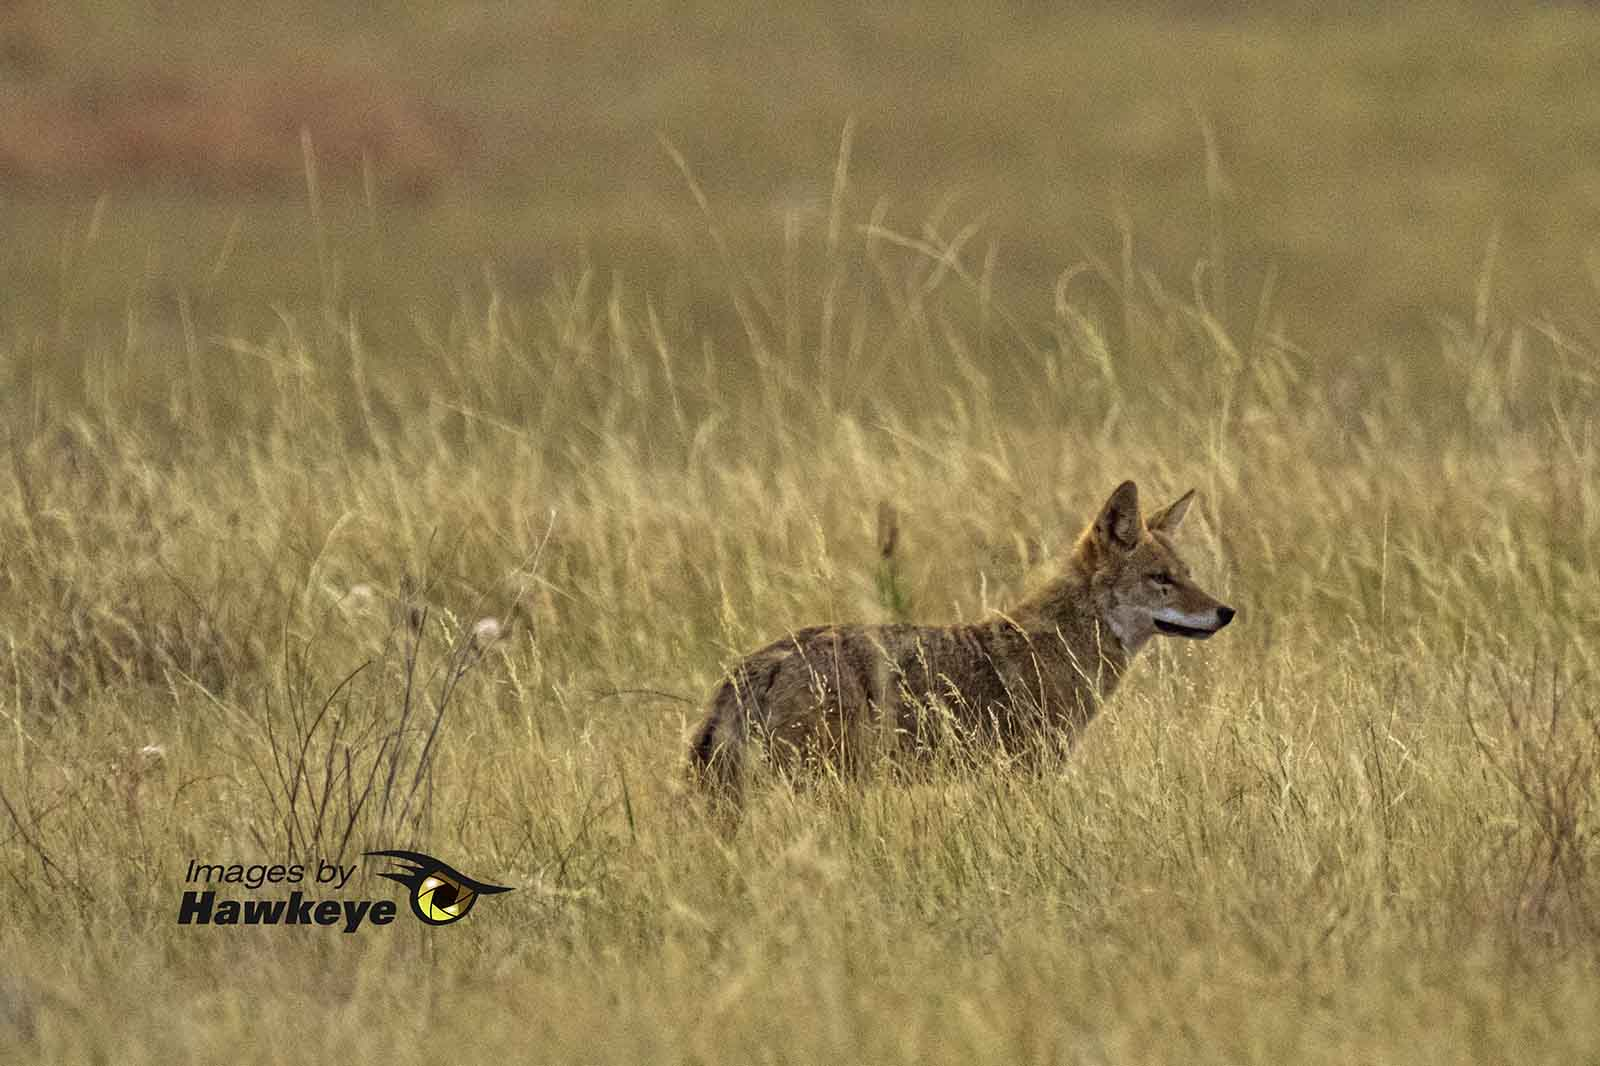 Fox in the grassland.